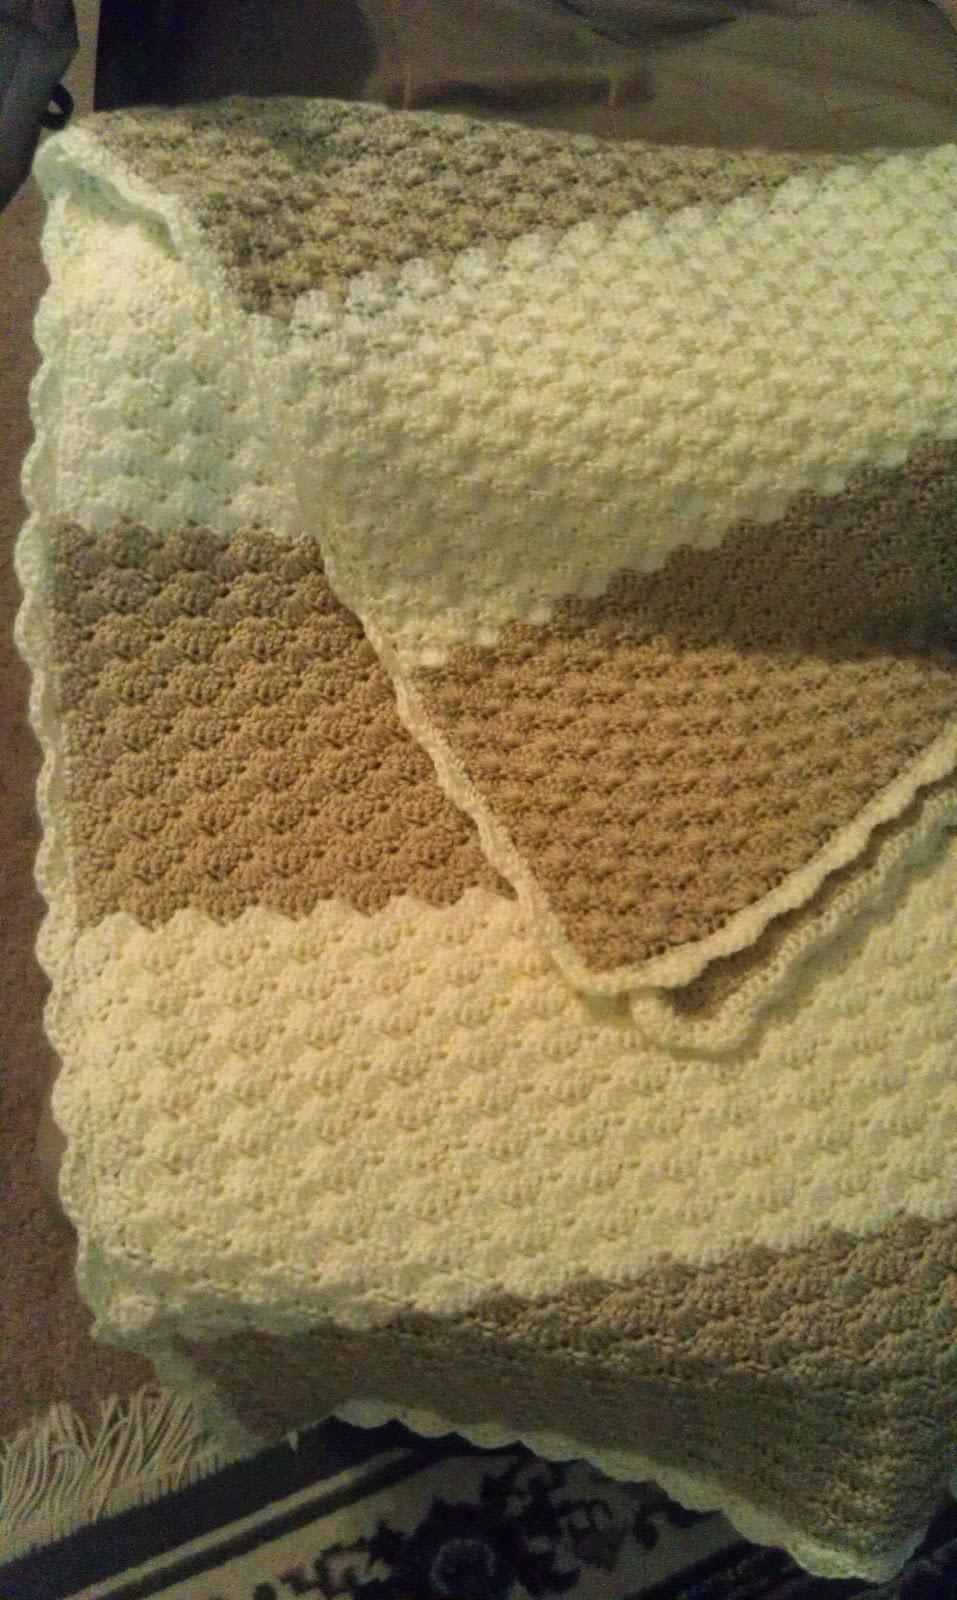 Crochet Afghan Stitch New Finished Crochet Blanket Shell Stitch Of Attractive 40 Ideas Crochet Afghan Stitch